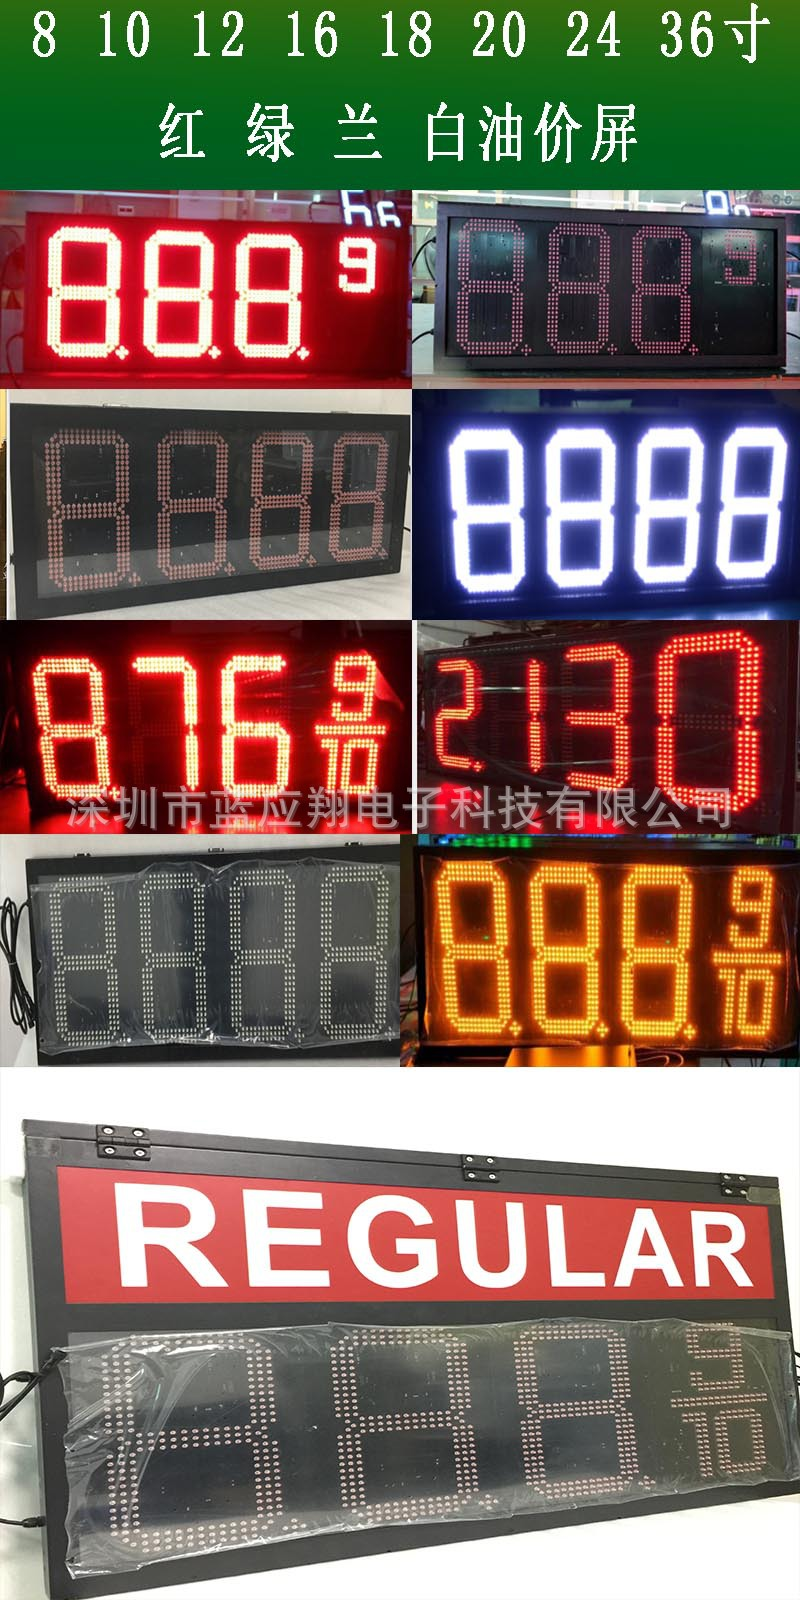 8888 oil price screen